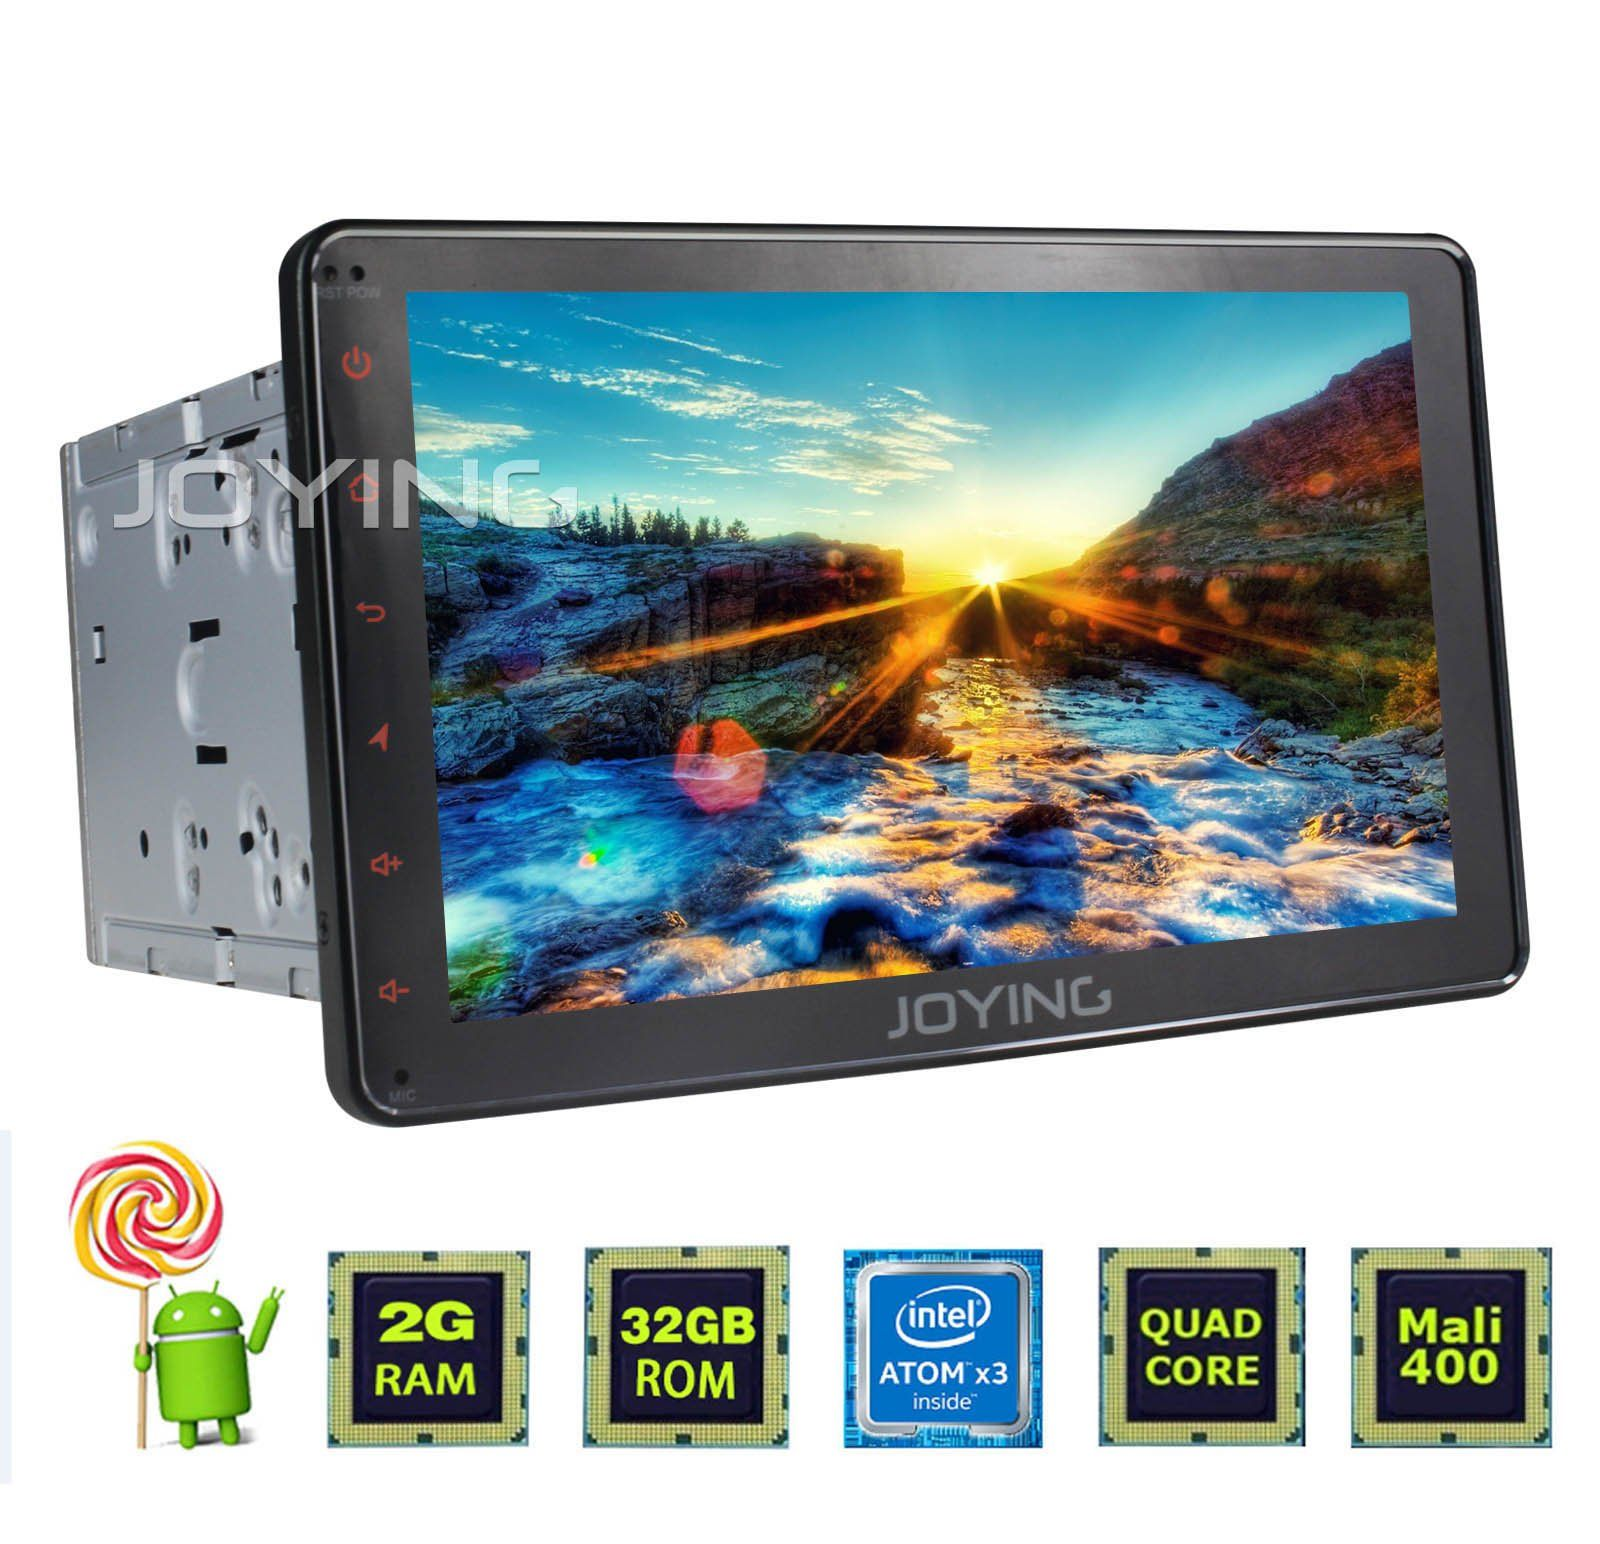 medium resolution of joying 8 inch android head unit double din touch screen car stereo 2gb ram intel quad core android 5 1 in dash navigation auto gps car radio audio receiver